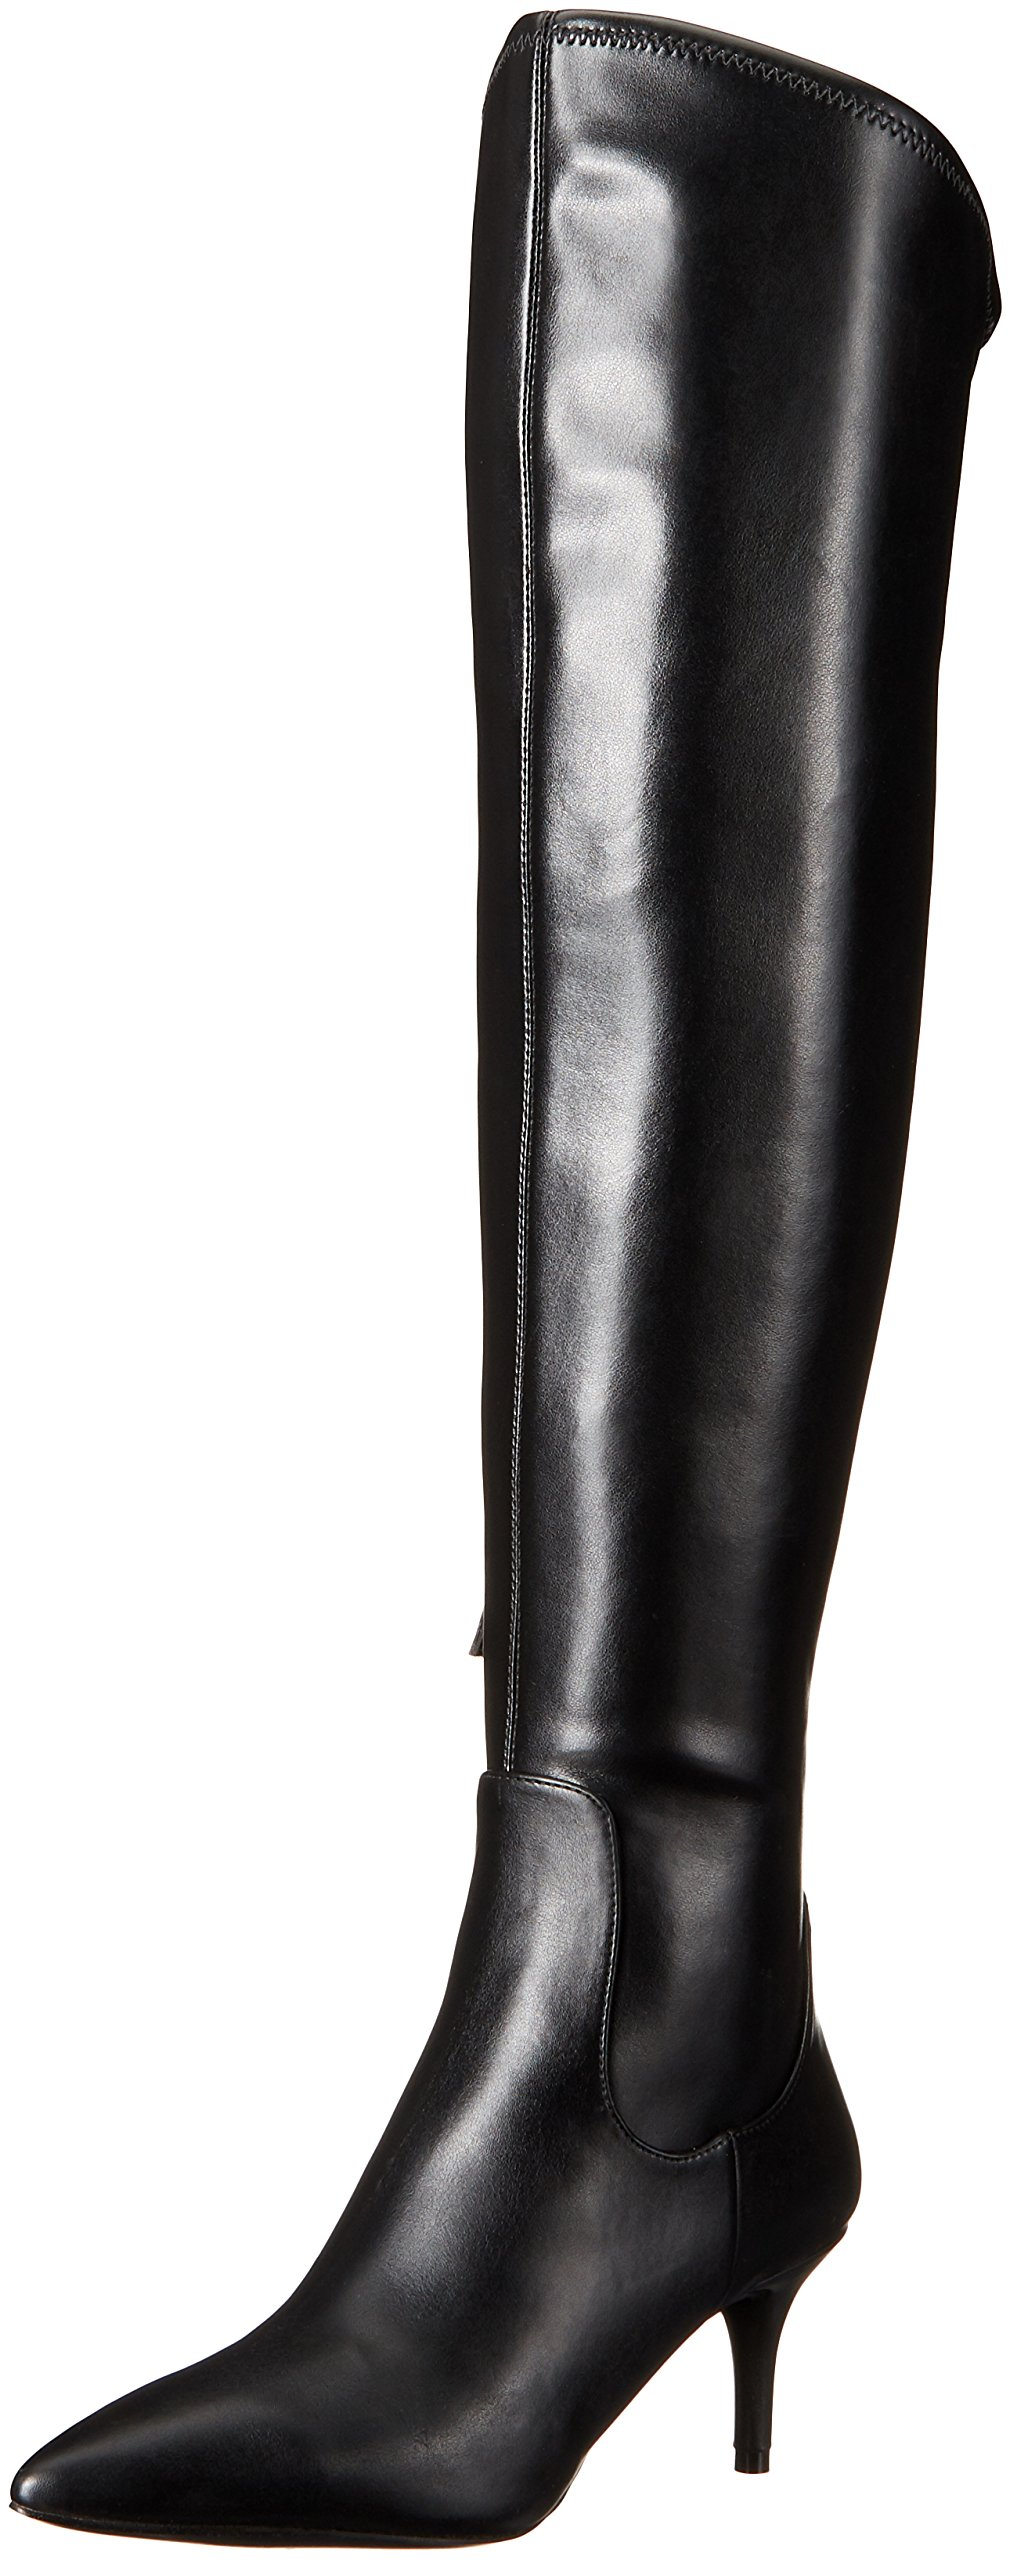 Nine West Women's Marcia Stretch Knee-High Boot, Black, 9.5 M US